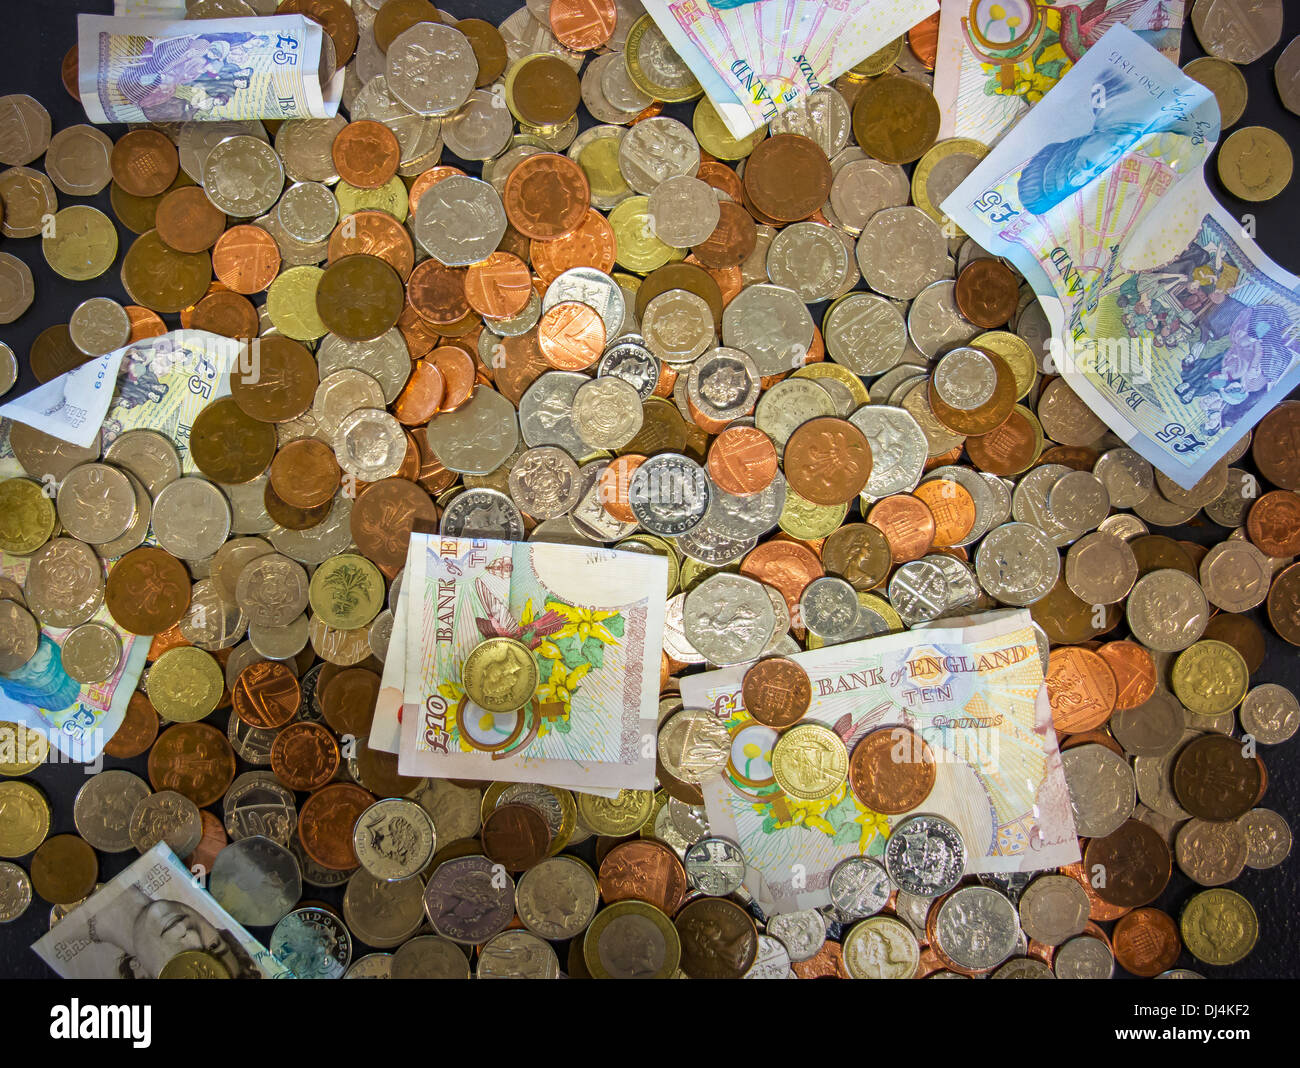 Money Stirling Coins Banknotes Donations Collections - Stock Image